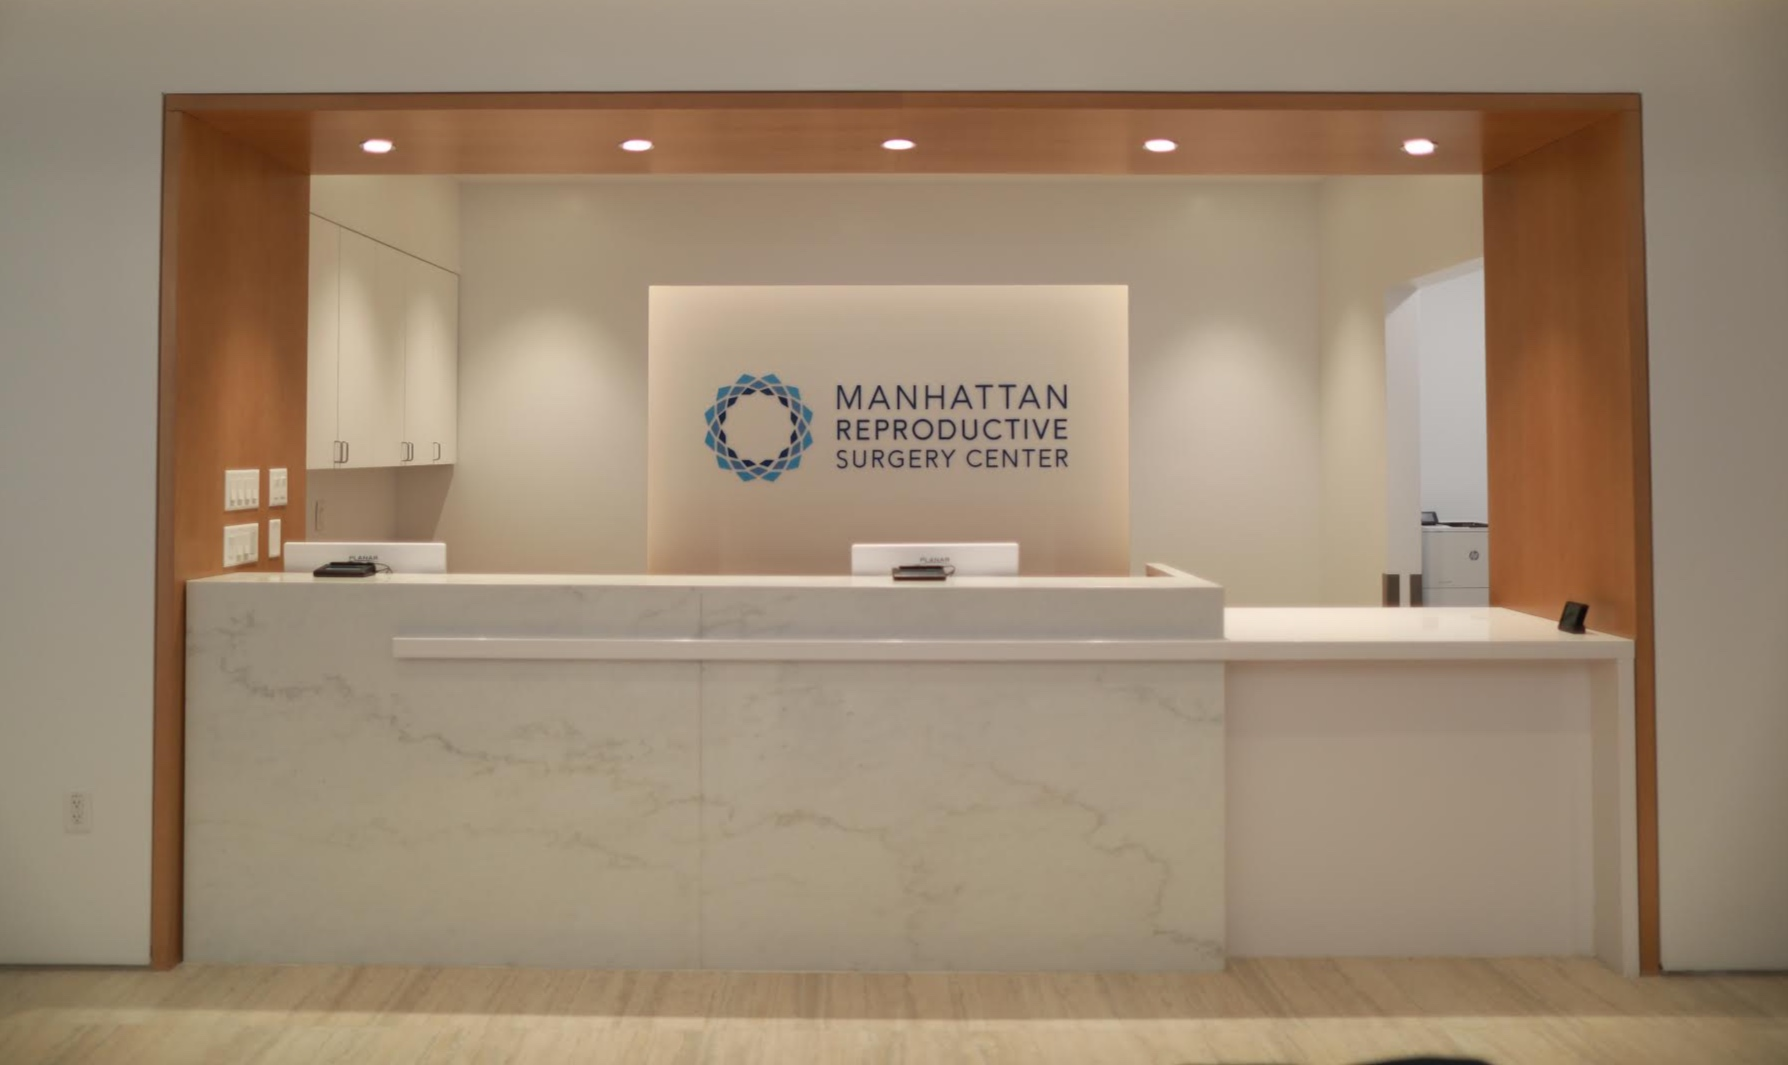 Manhattan Reproductive Surgery Center